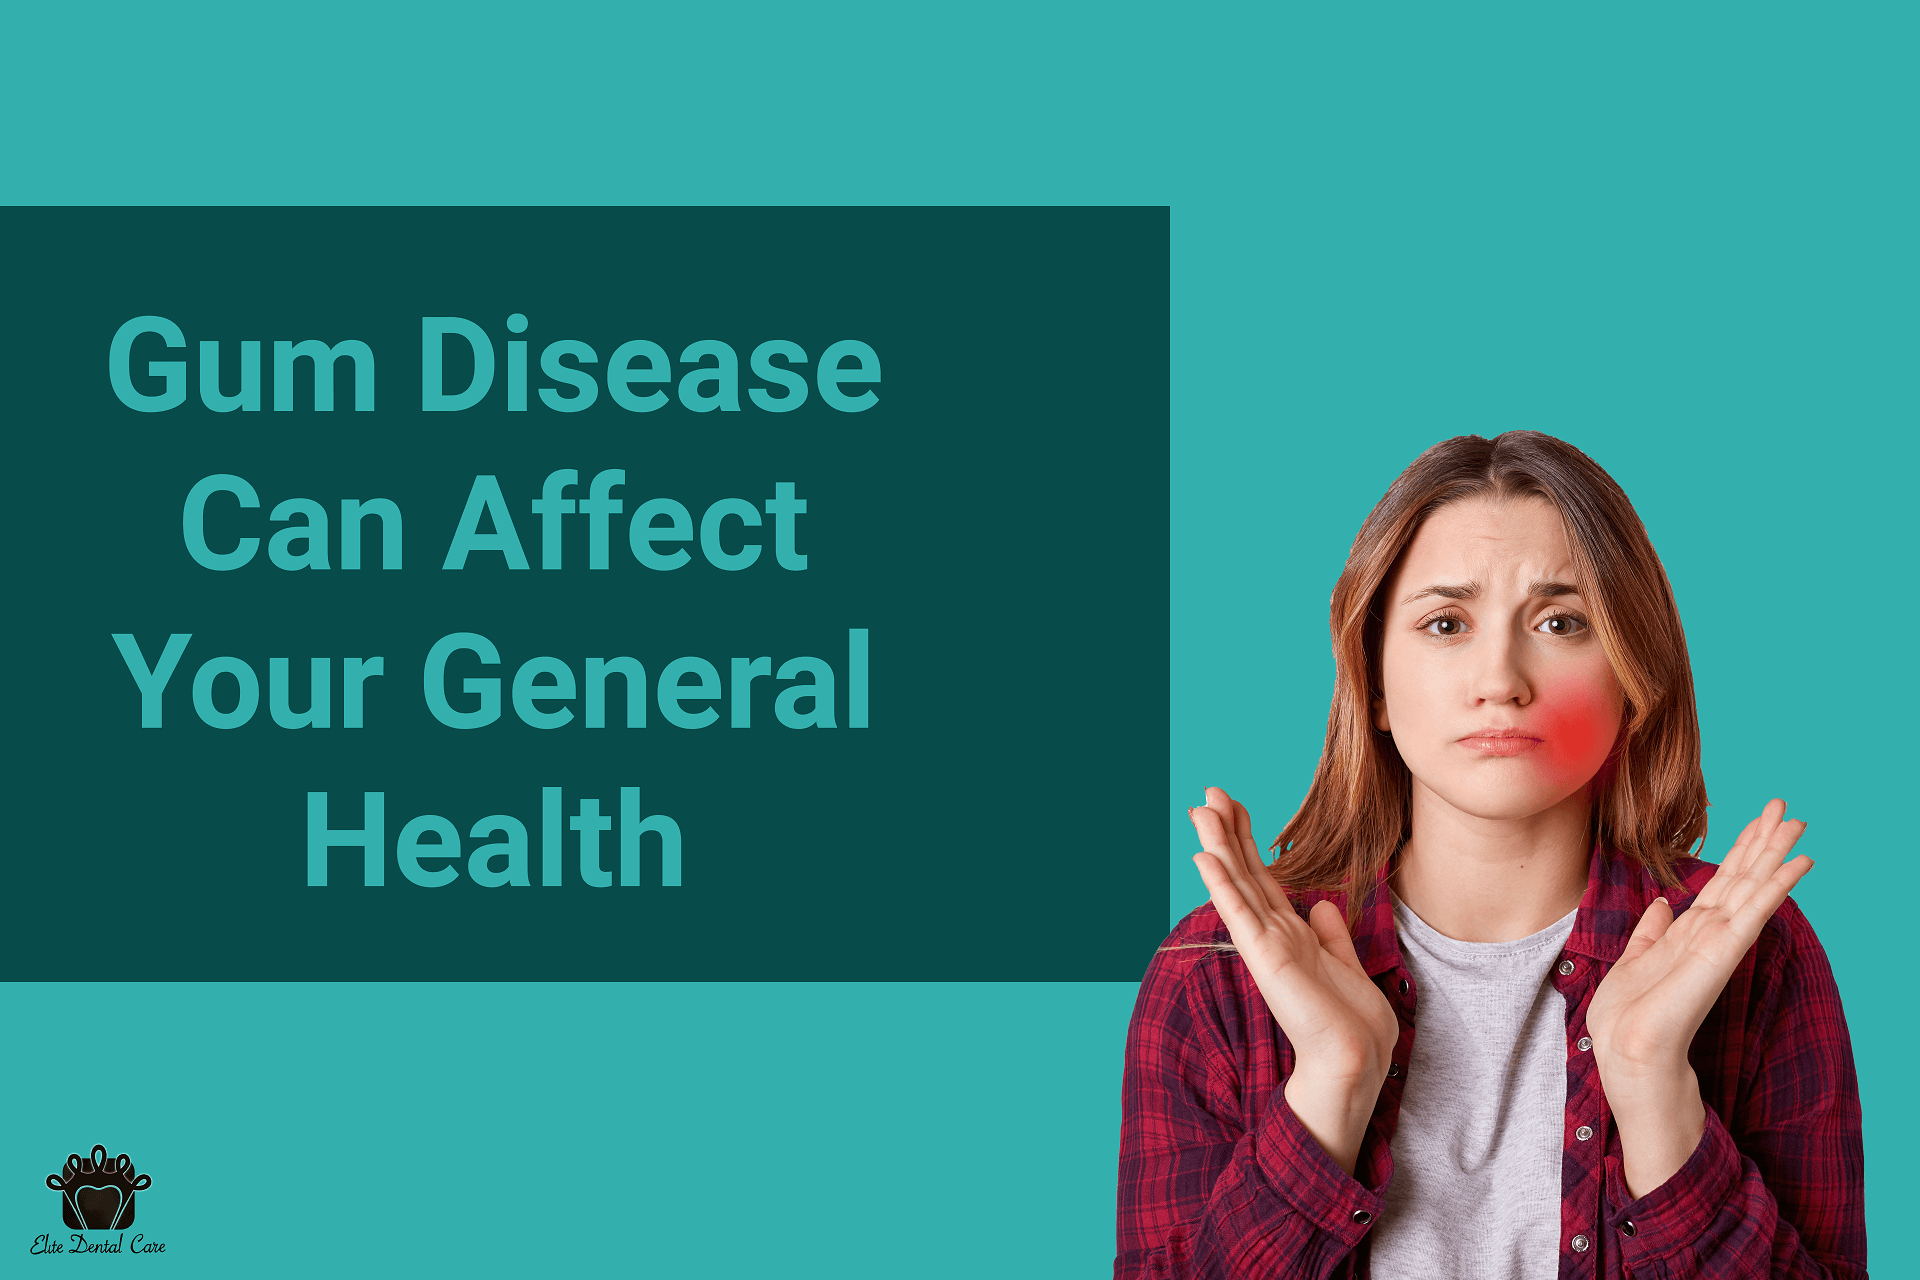 How Gum Disease Can Affect Your General Health